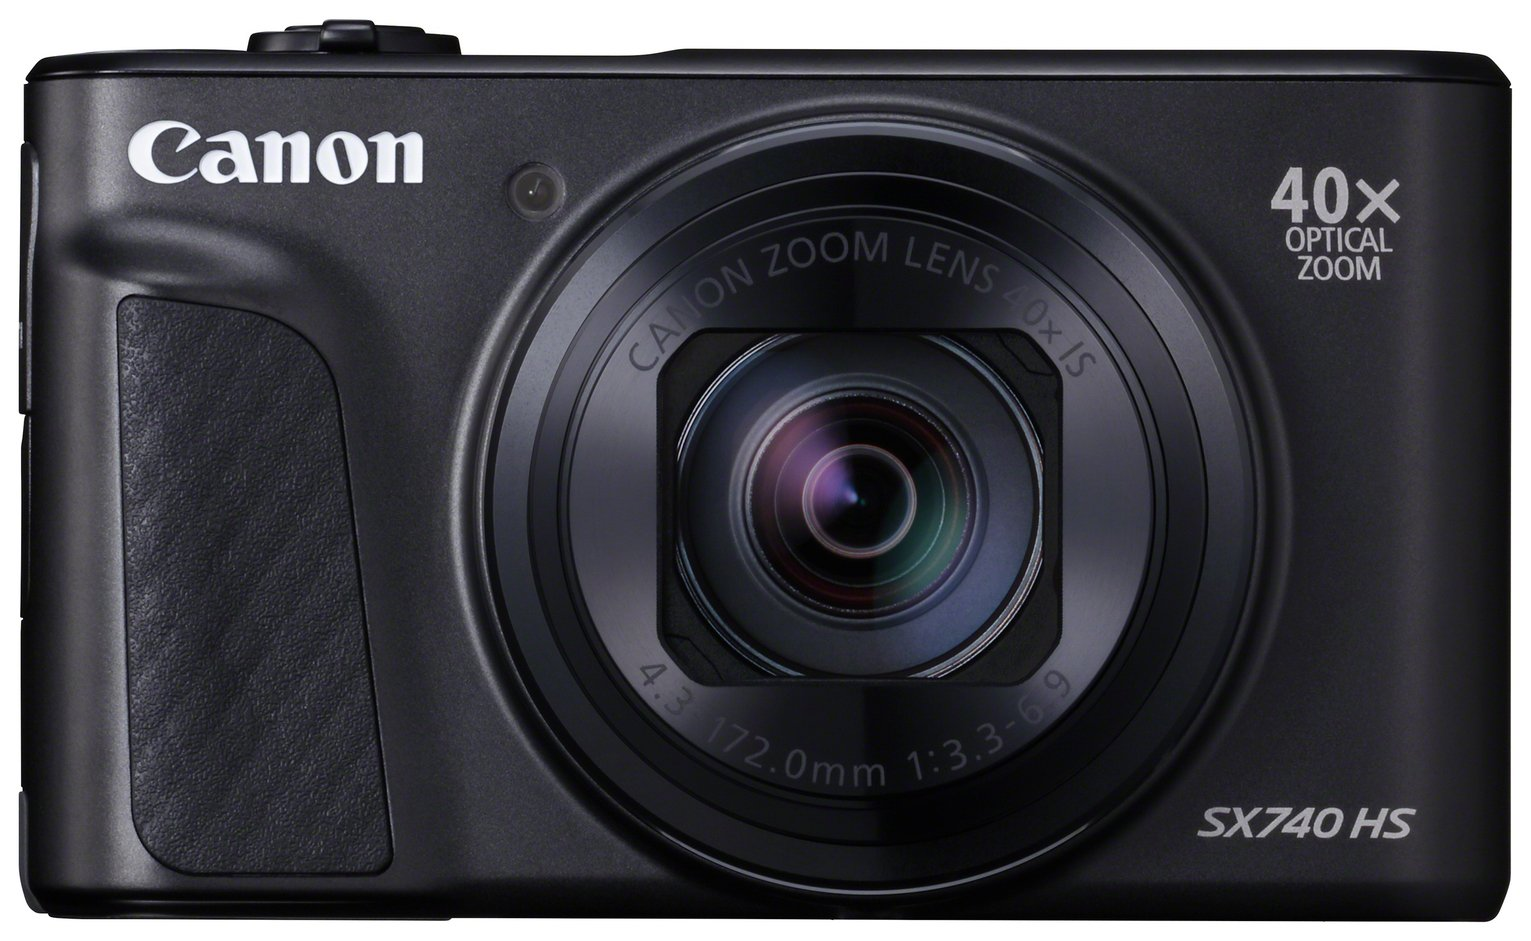 Canon PowerShot SX740 HS 20.3MP 40x Zoom Camera - Black